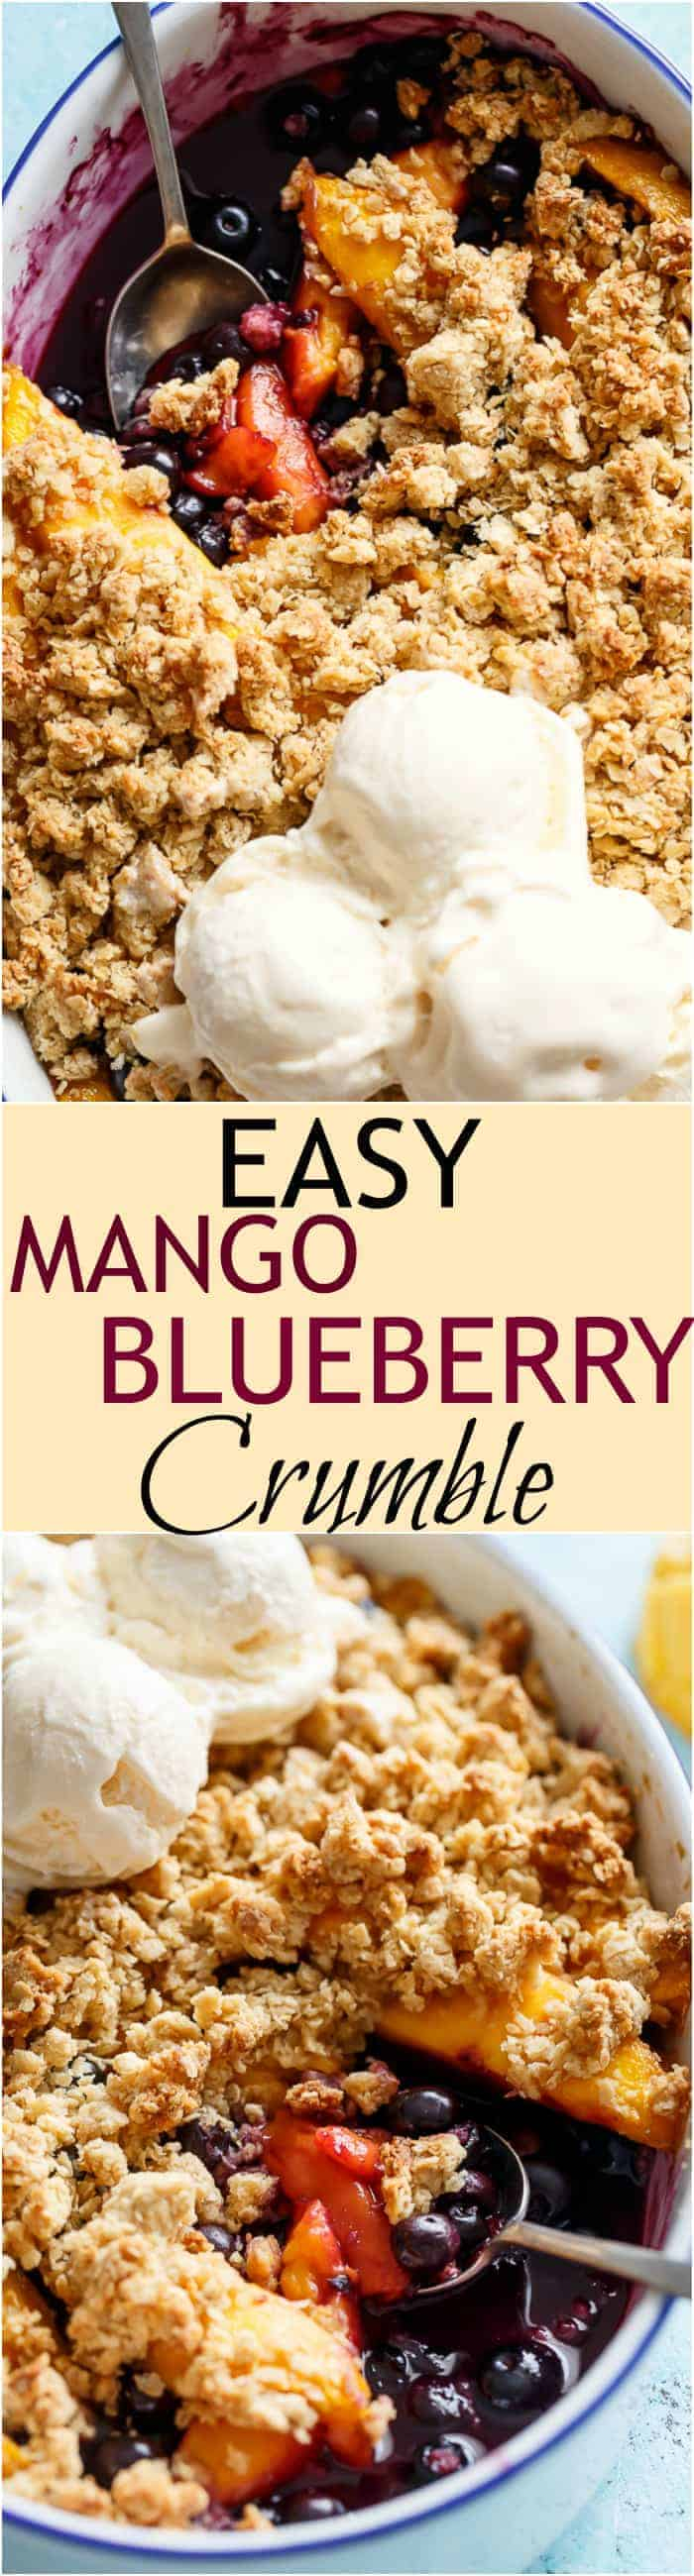 A classic and Easy Mango Blueberry Crumble with the crispy, buttery topping that's lighter in calories and BIG on flavour! | https://cafedelites.com